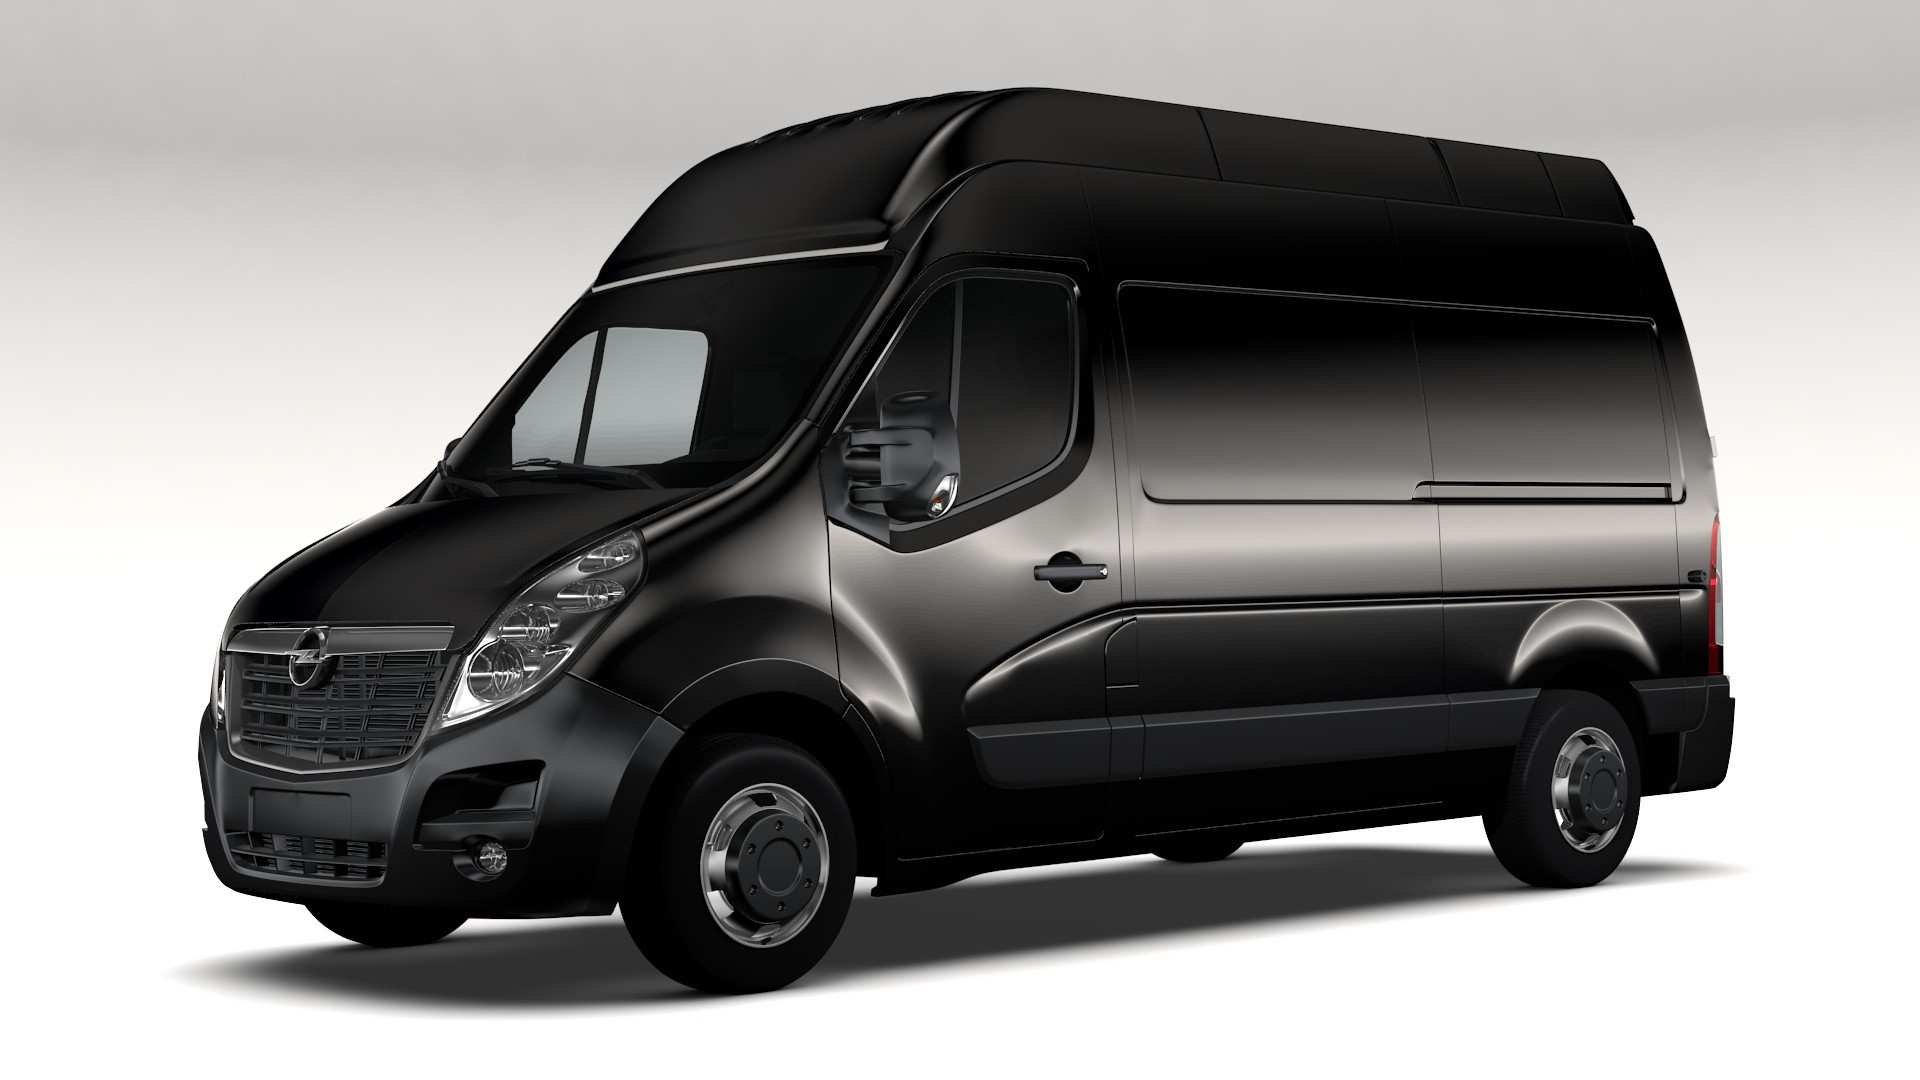 27 All New Opel Movano 2020 Model for Opel Movano 2020